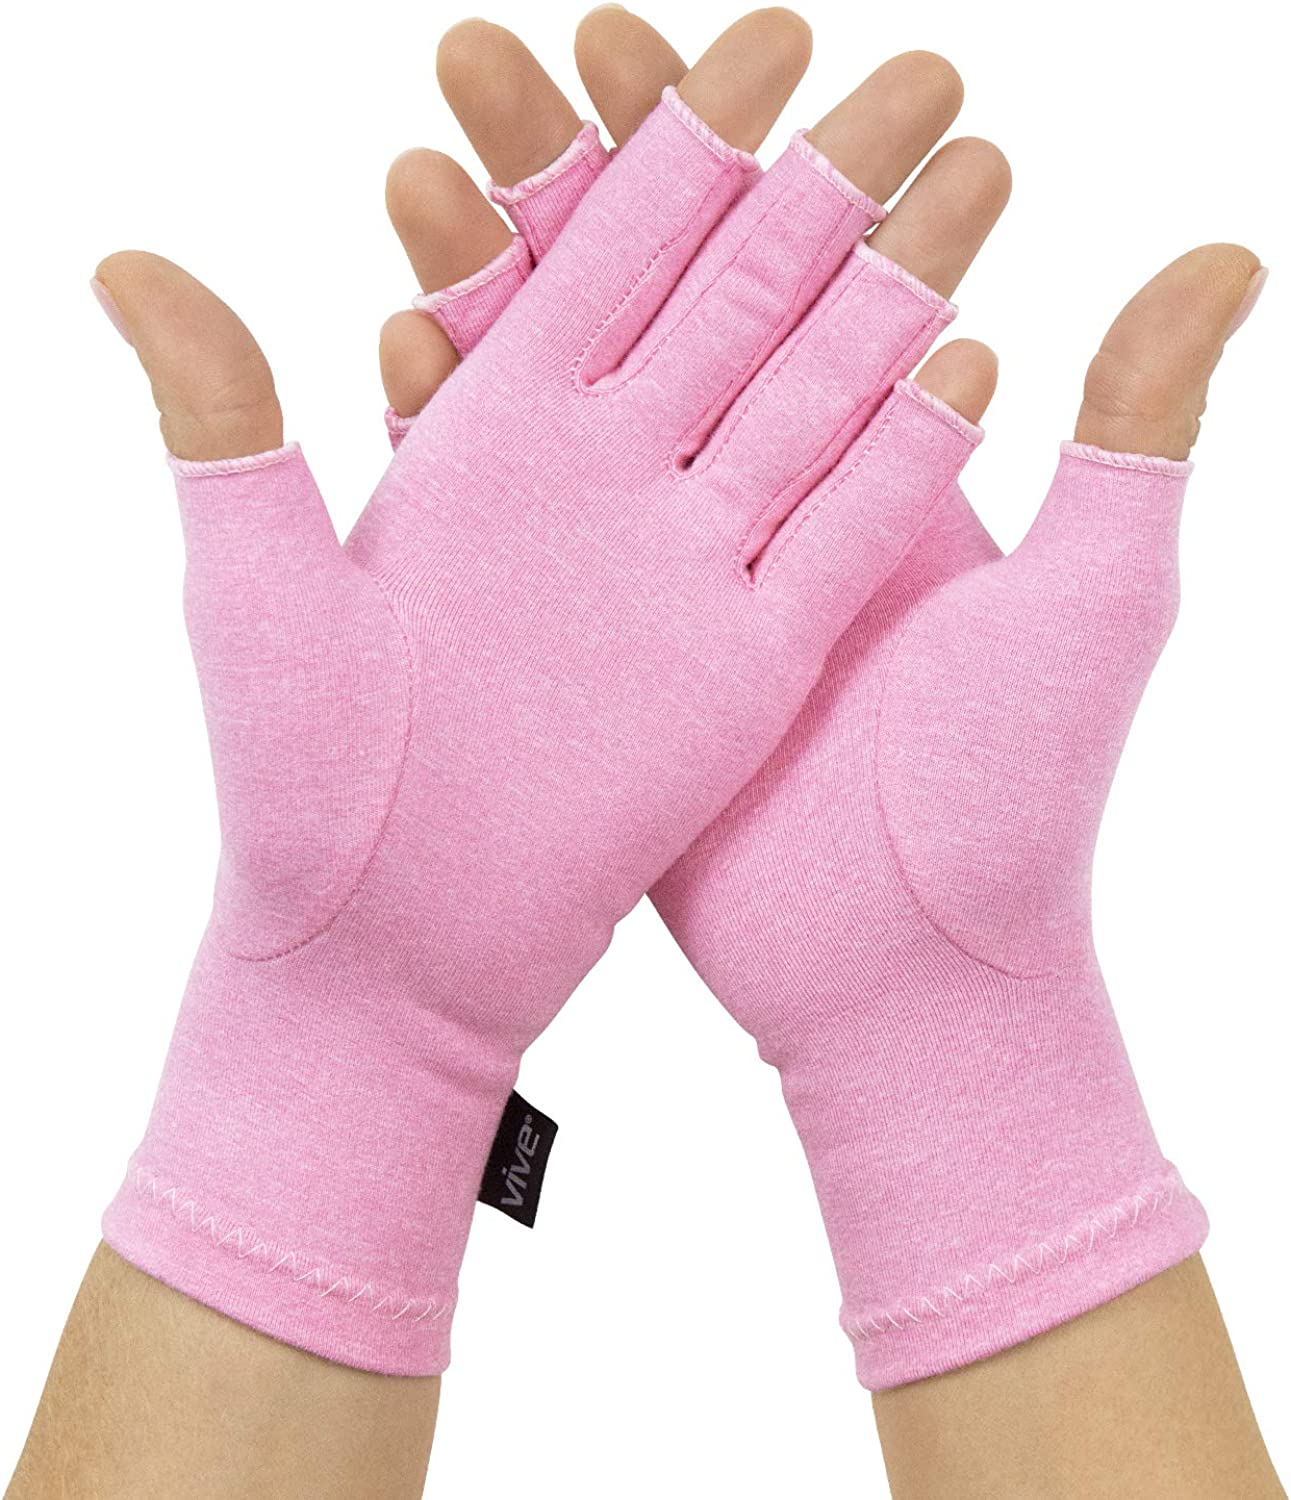 Vive Pink Arthritis Gloves Max 73% OFF Compression Fingerless Hand Ranking TOP11 -